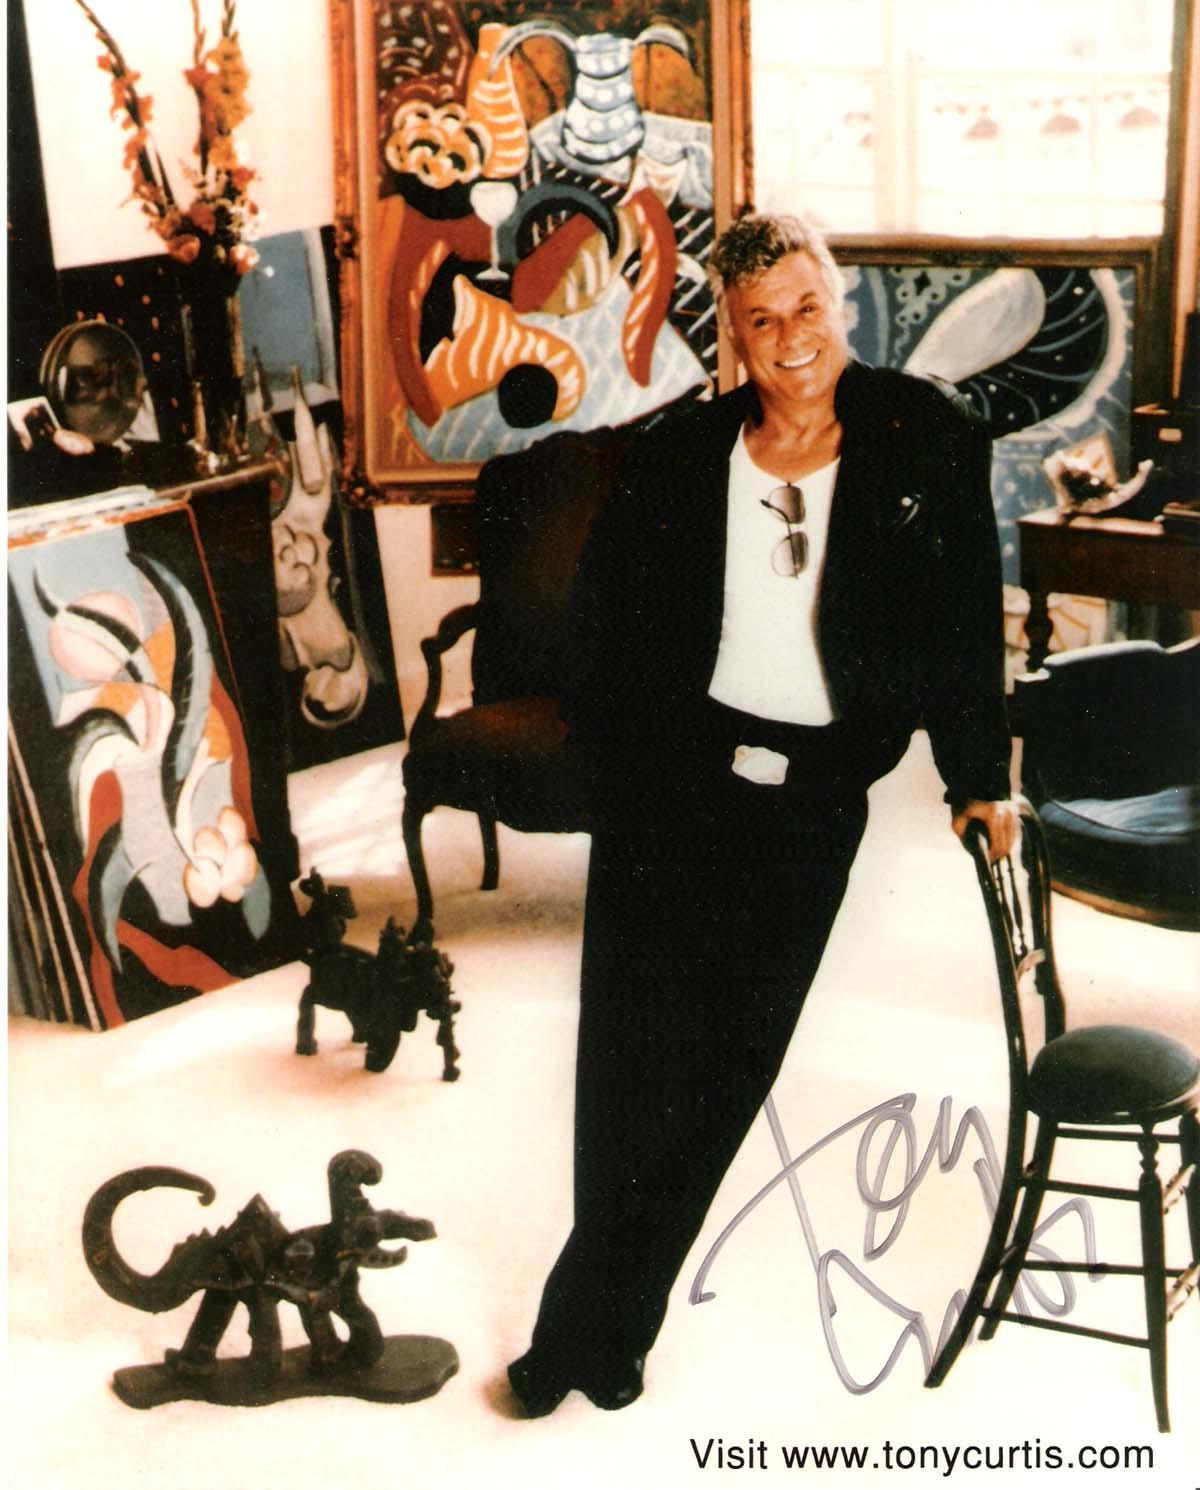 Tony Curtis Signed Photo - Was in Over 100 Films Passed Away 2010 8x10 Color